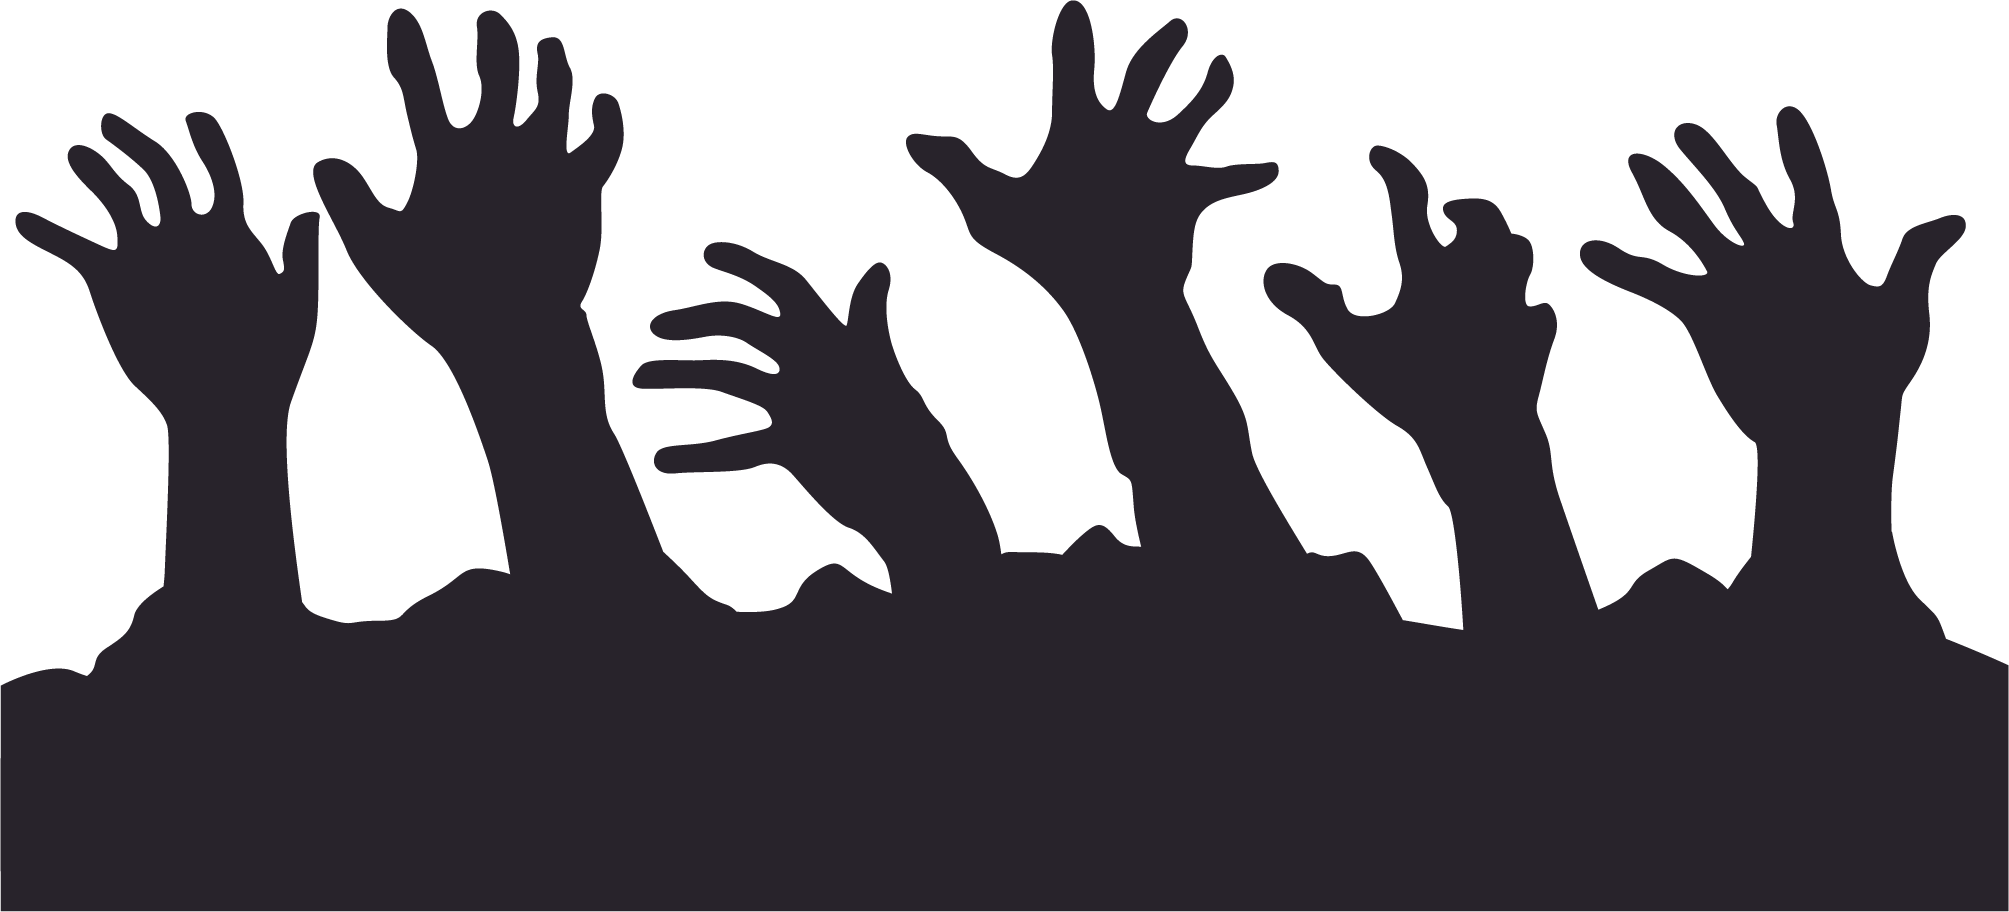 Hand clipart zombie. Png transparent free images